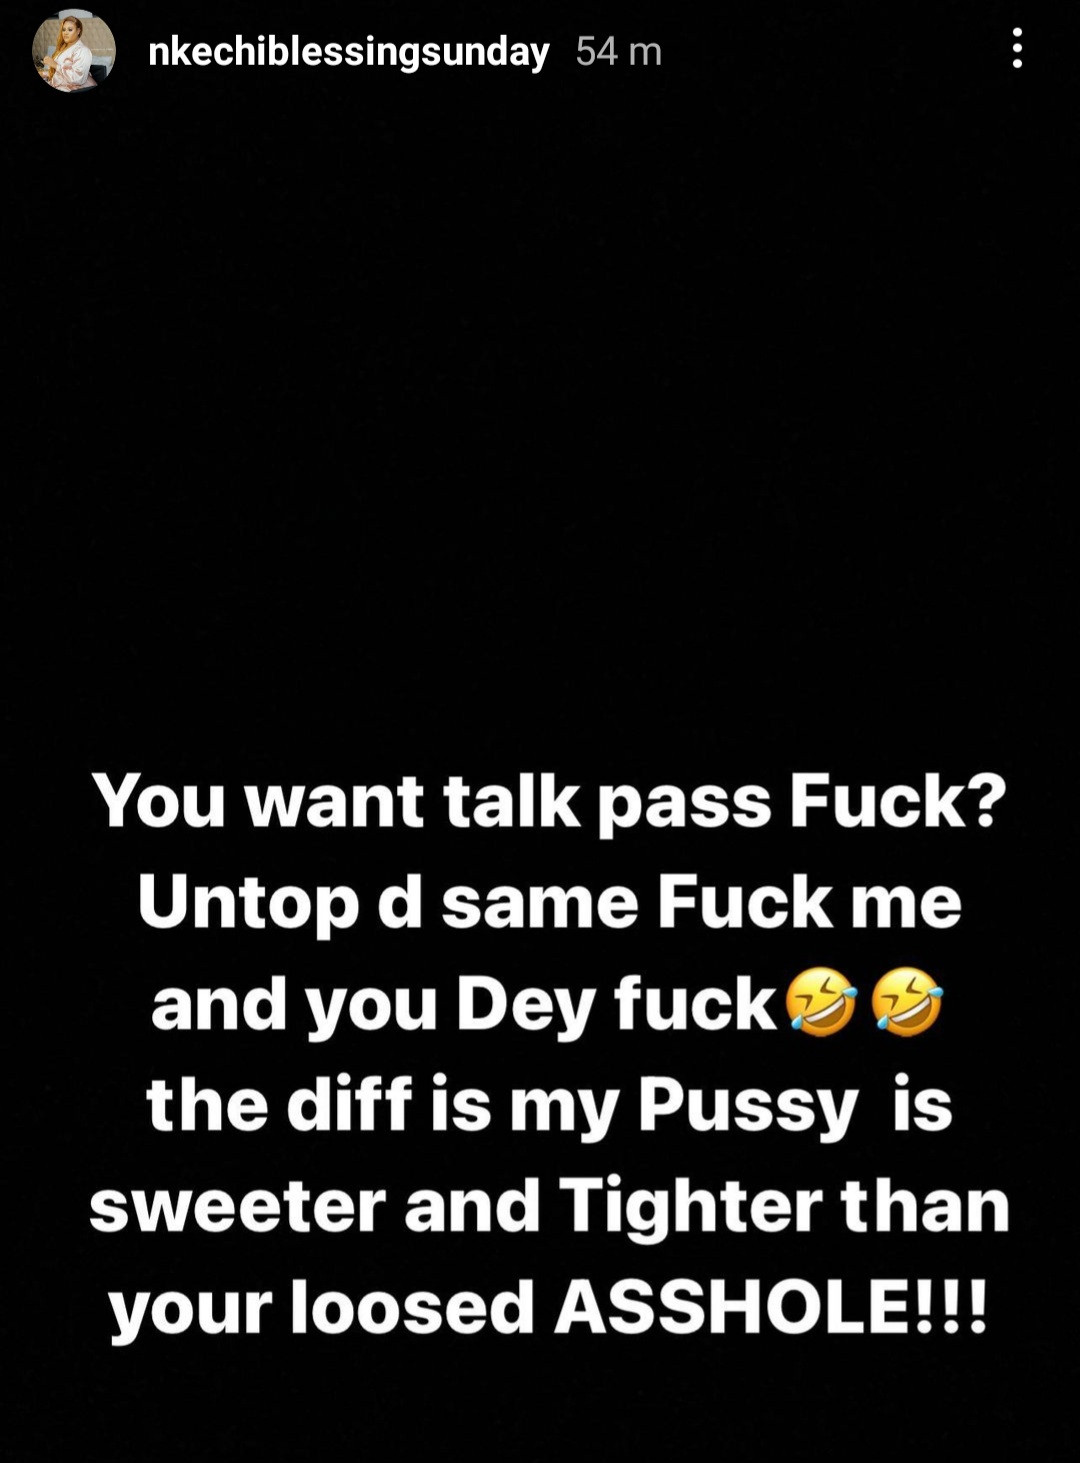 Bobrisky And Nkechi Blessing Fights Dirty On Instagram Over 'Tattoo Issues' 10